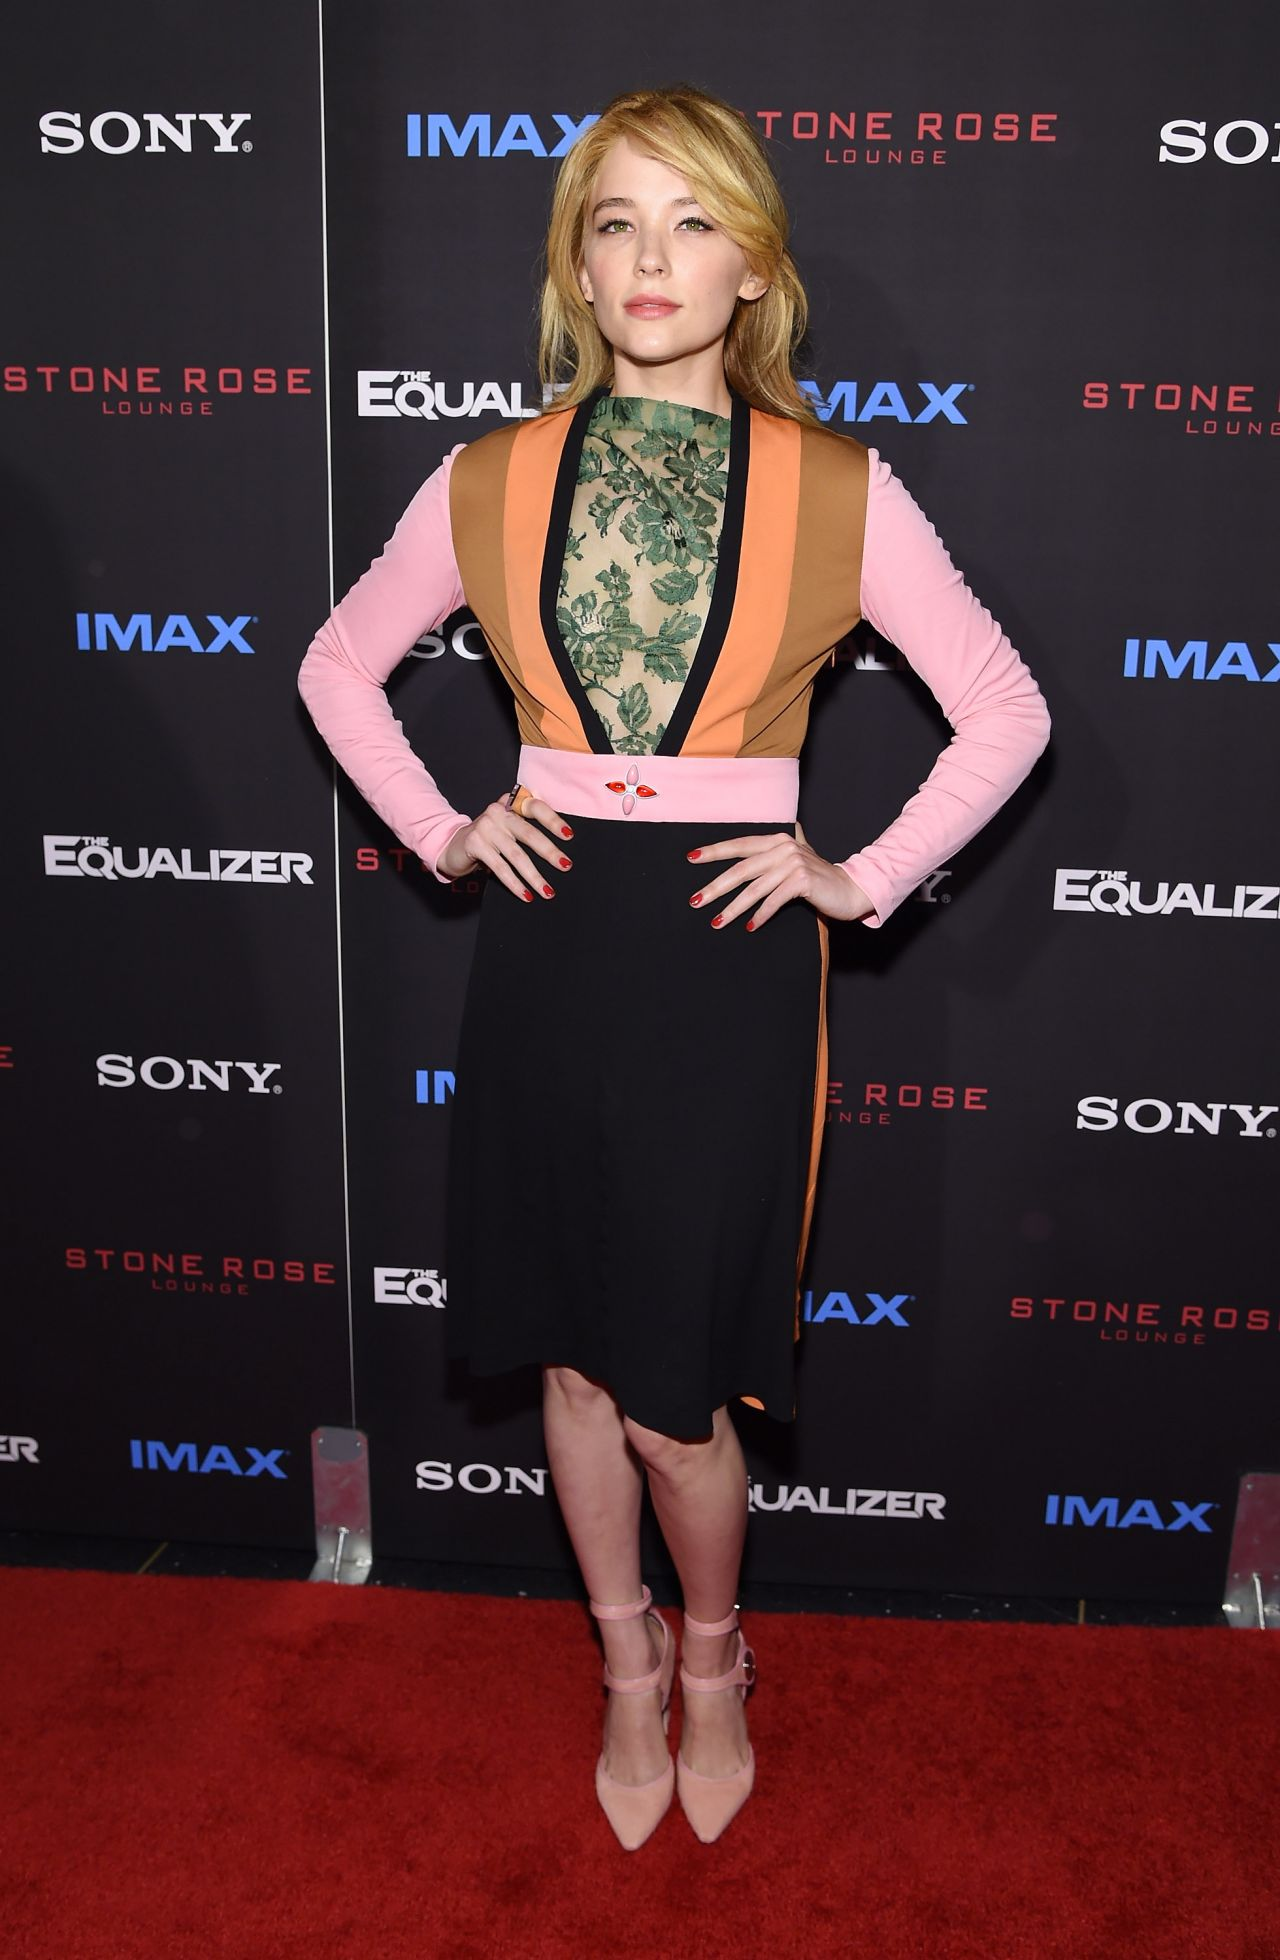 Haley Bennett wears Louis Vuitton at 'The Equalizer' New